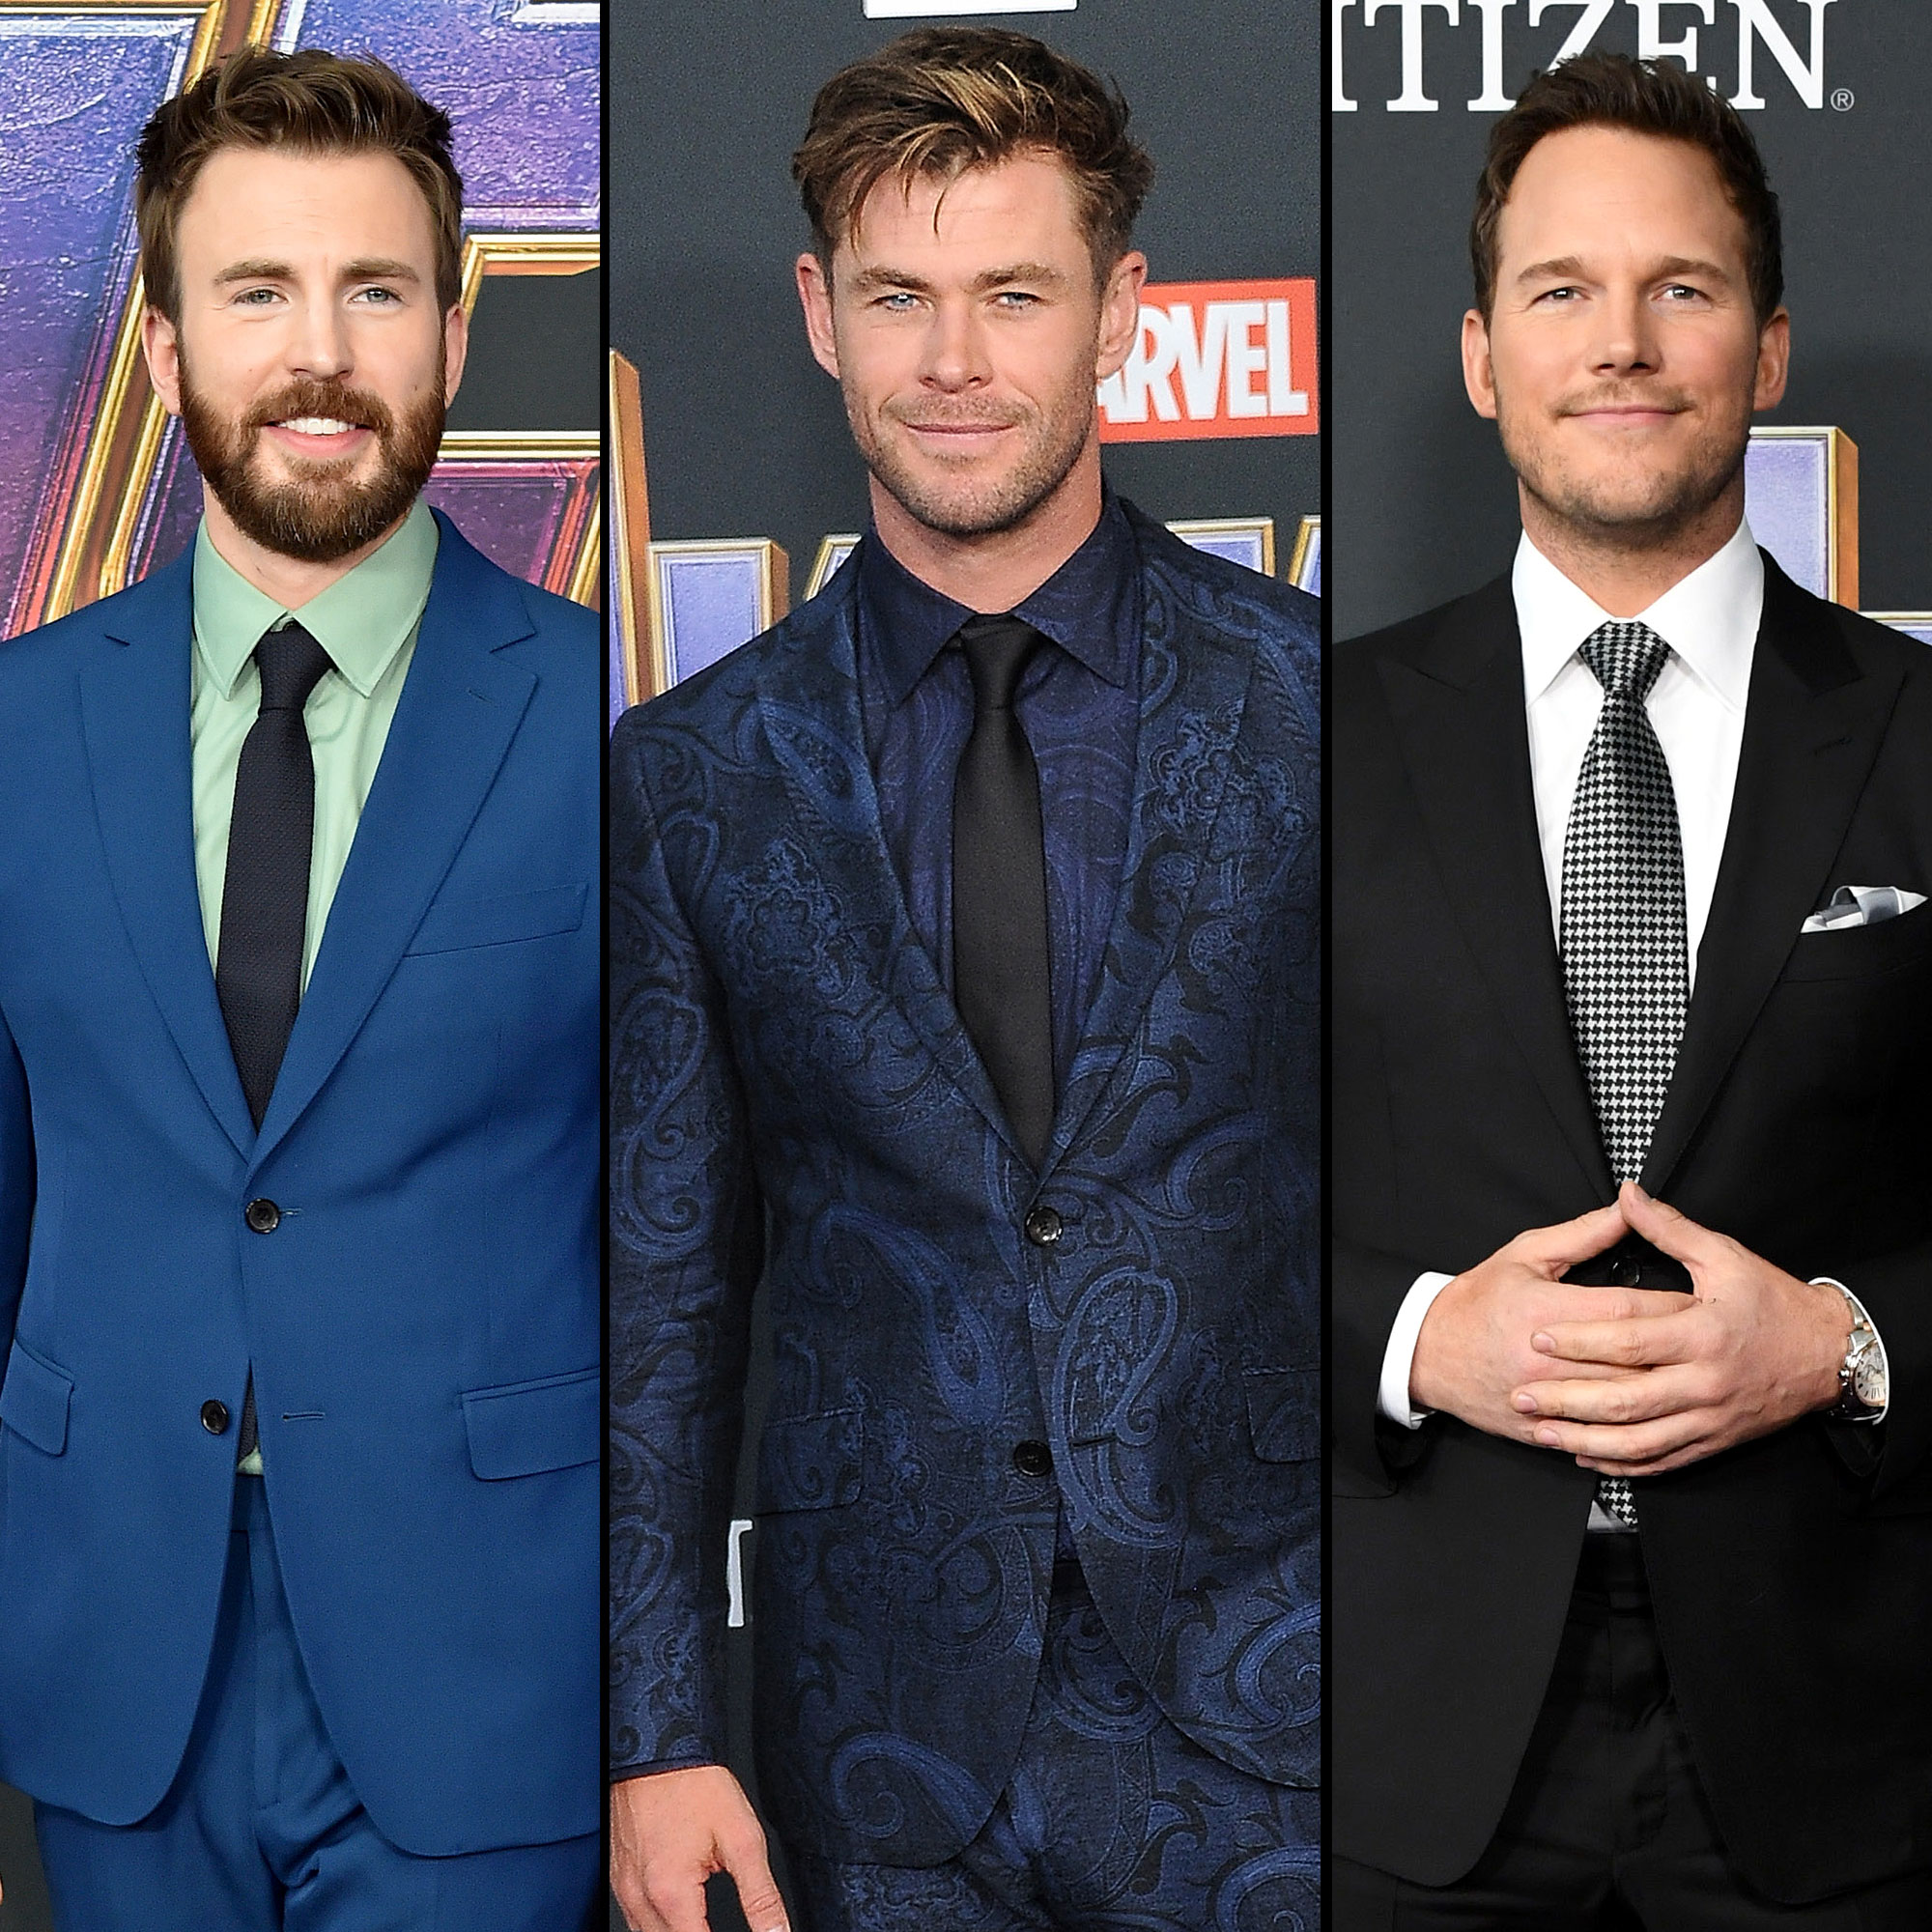 Chris-Evans-and-Chris-Hemsworth-and-Chris-Pratt